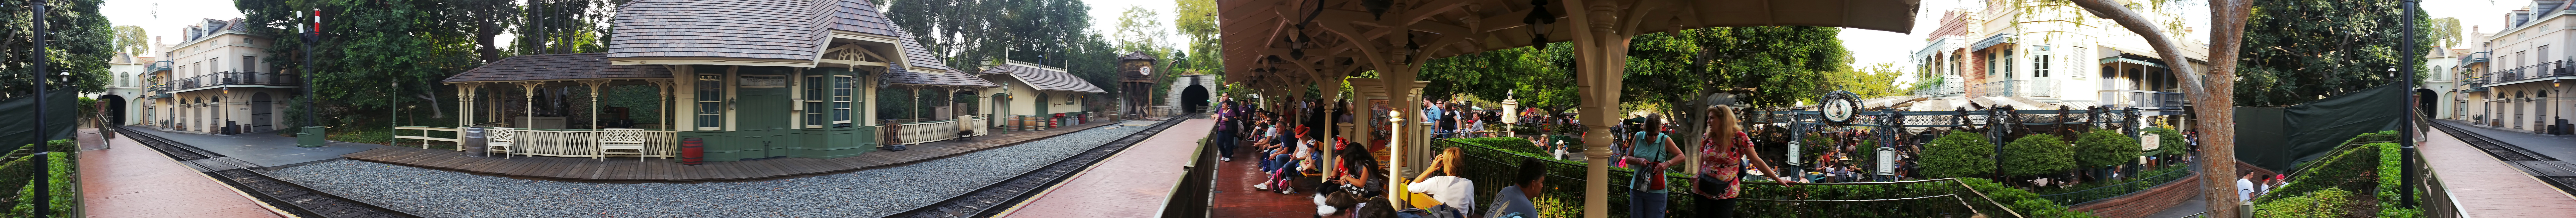 Waiting for the Disney train in New Oreleans square